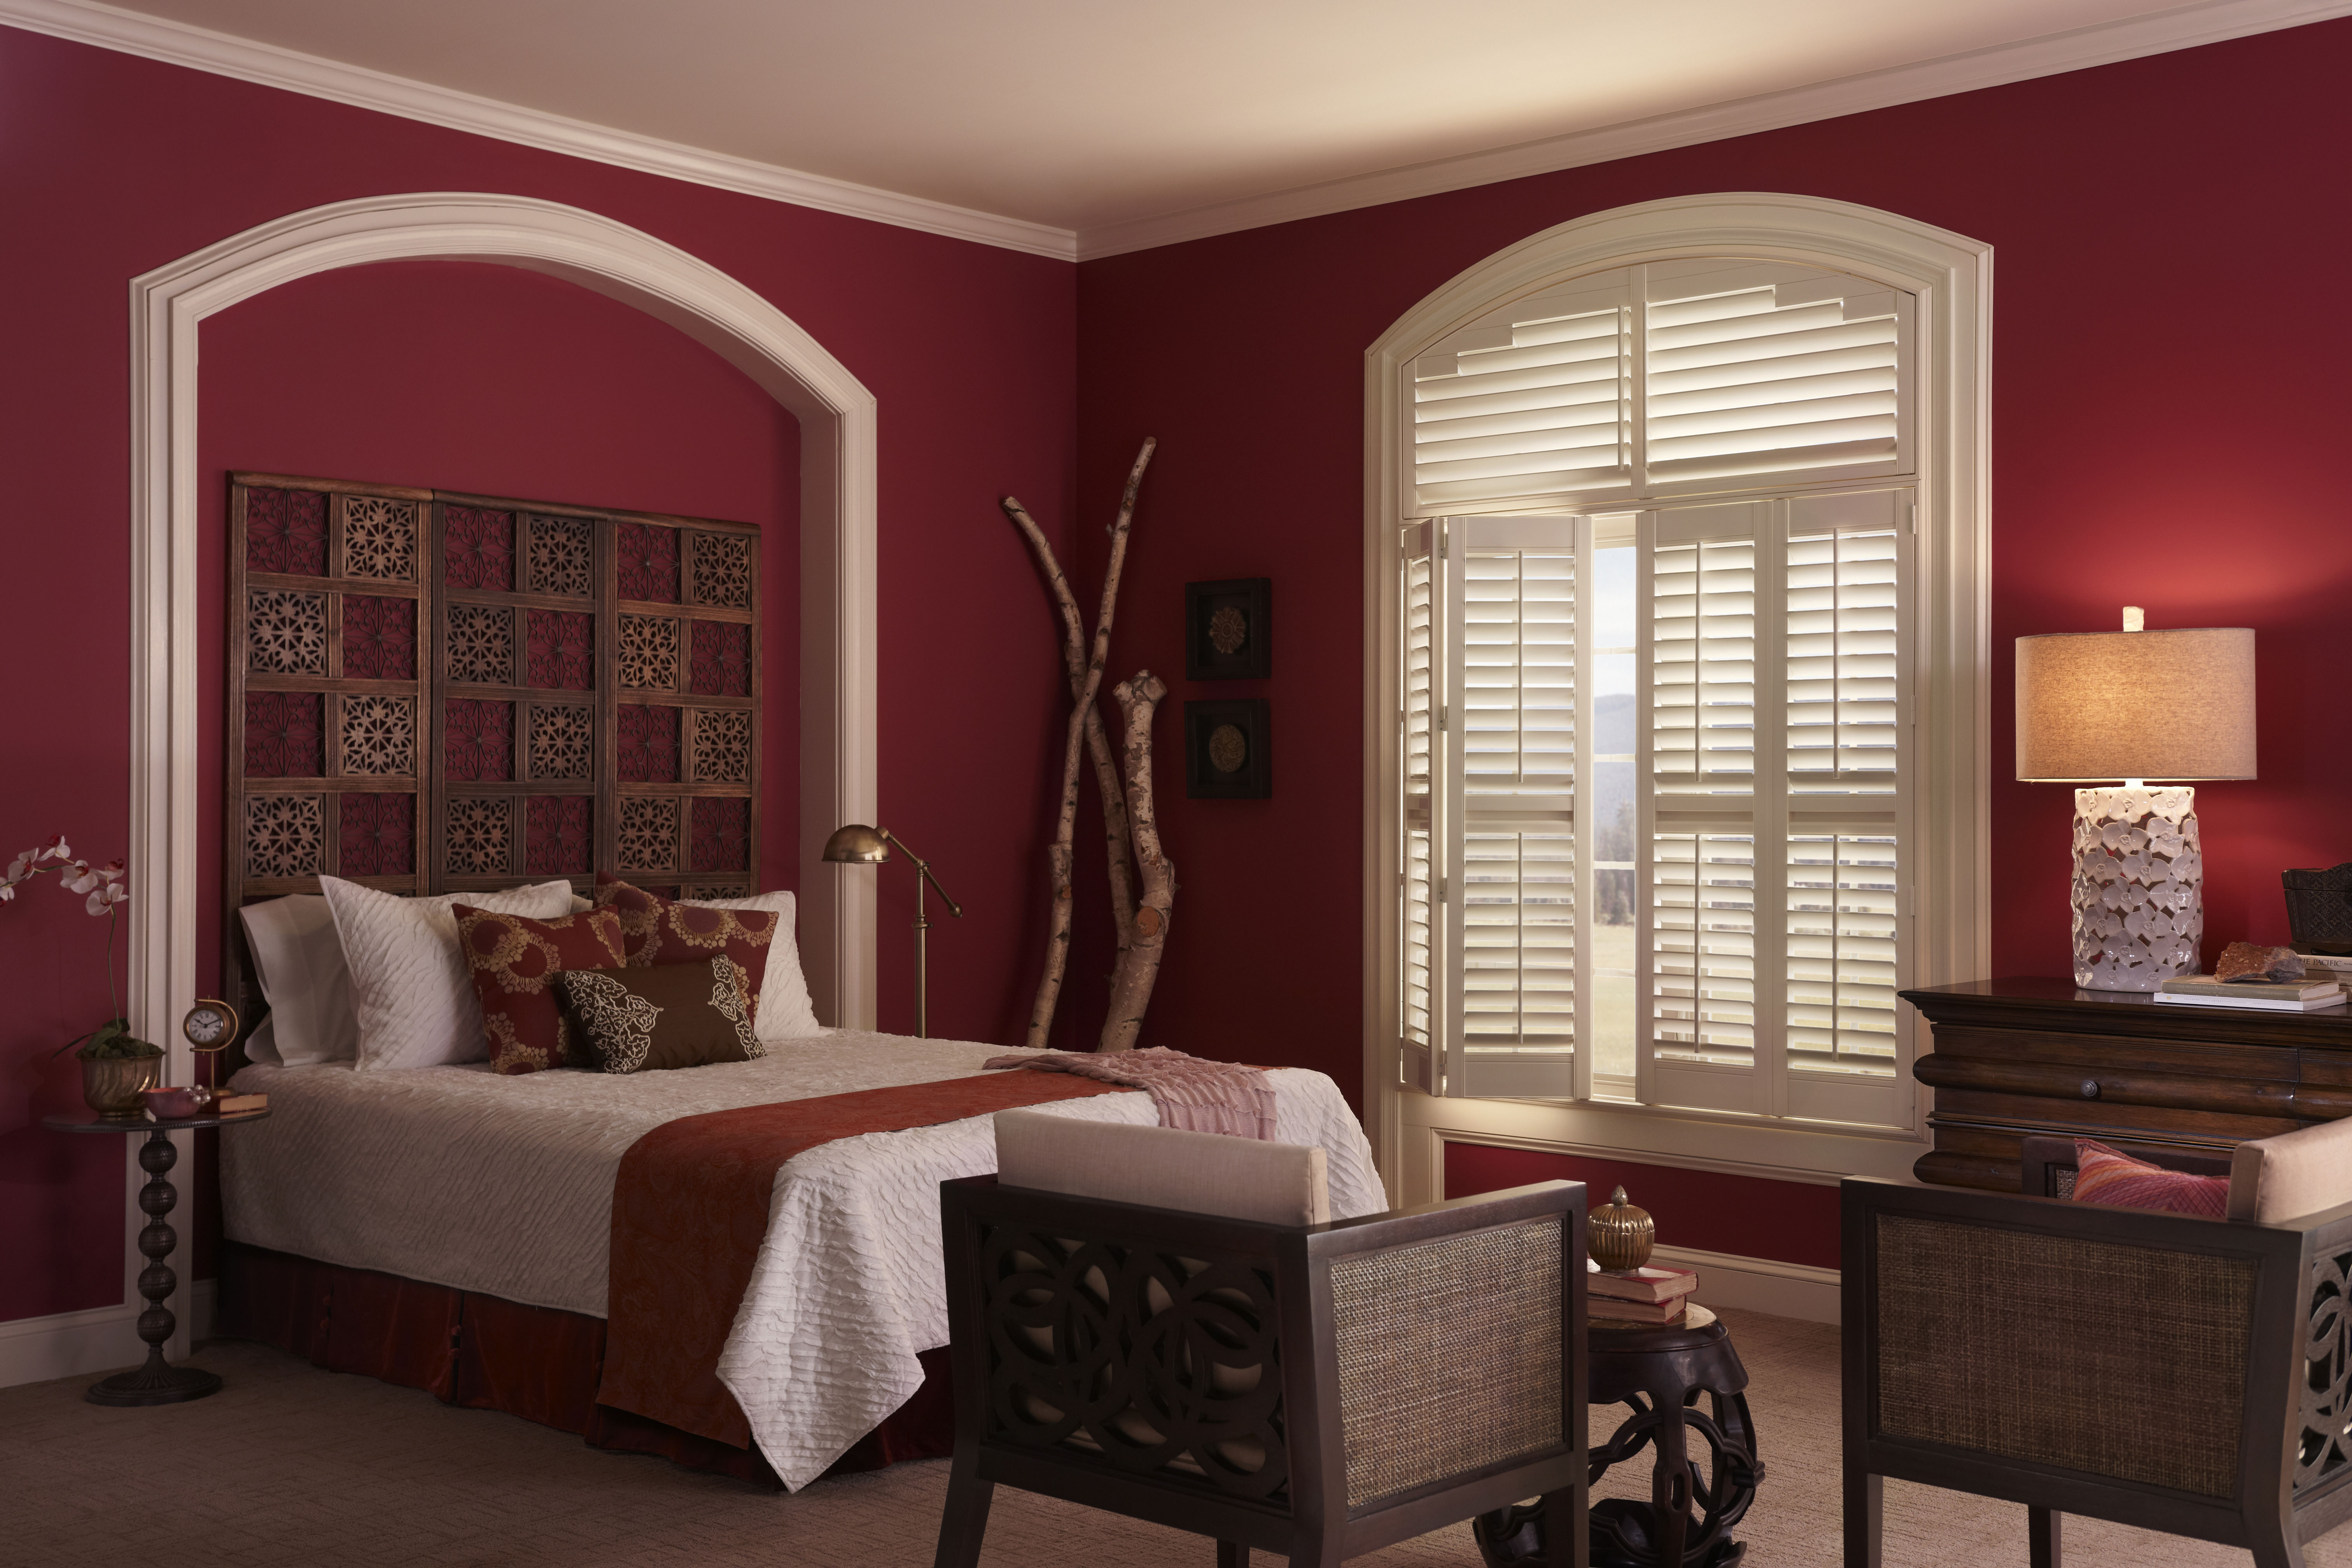 blinds period clipse news properties hutters property for choosing shutters the perfect classic